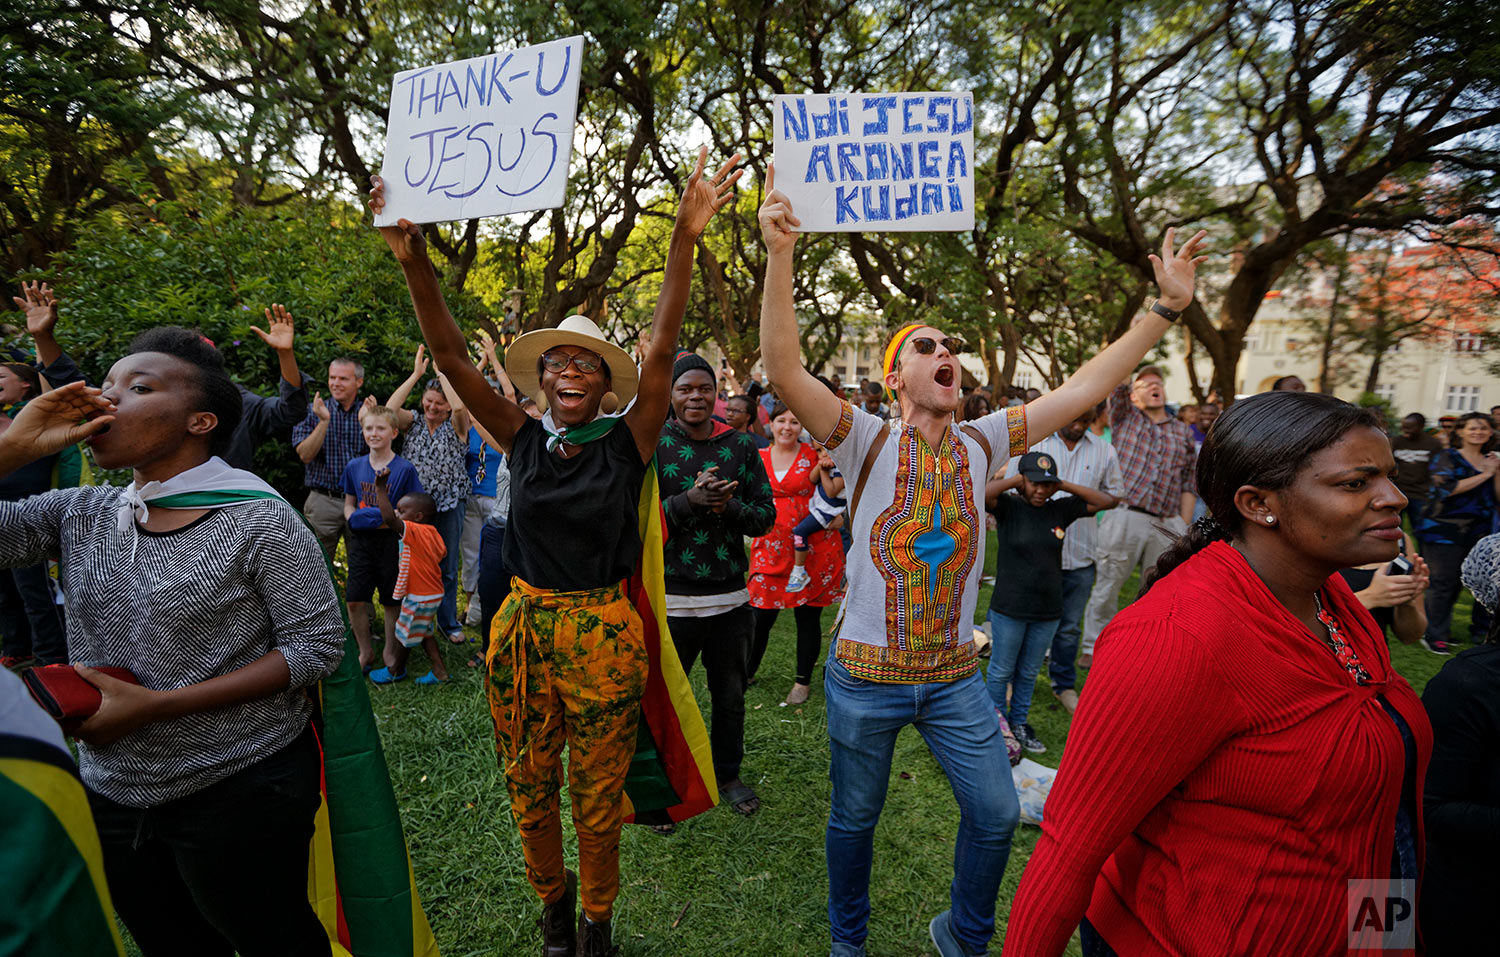 "Zimbabweans sing and pray at a Christian peace and prayer rally in downtown Harare, Zimbabwe Sunday, Nov. 19, 2017. A day after huge crowds rallied peacefully in the capital for 93-year-old President Robert Mugabe to step down, Zimbabweans around the country attended Sunday church services and peace rallies, praying for the future of their country. Sign in Shona at right reads ""It was Jesus who planned it"". (AP Photo/Ben Curtis)"